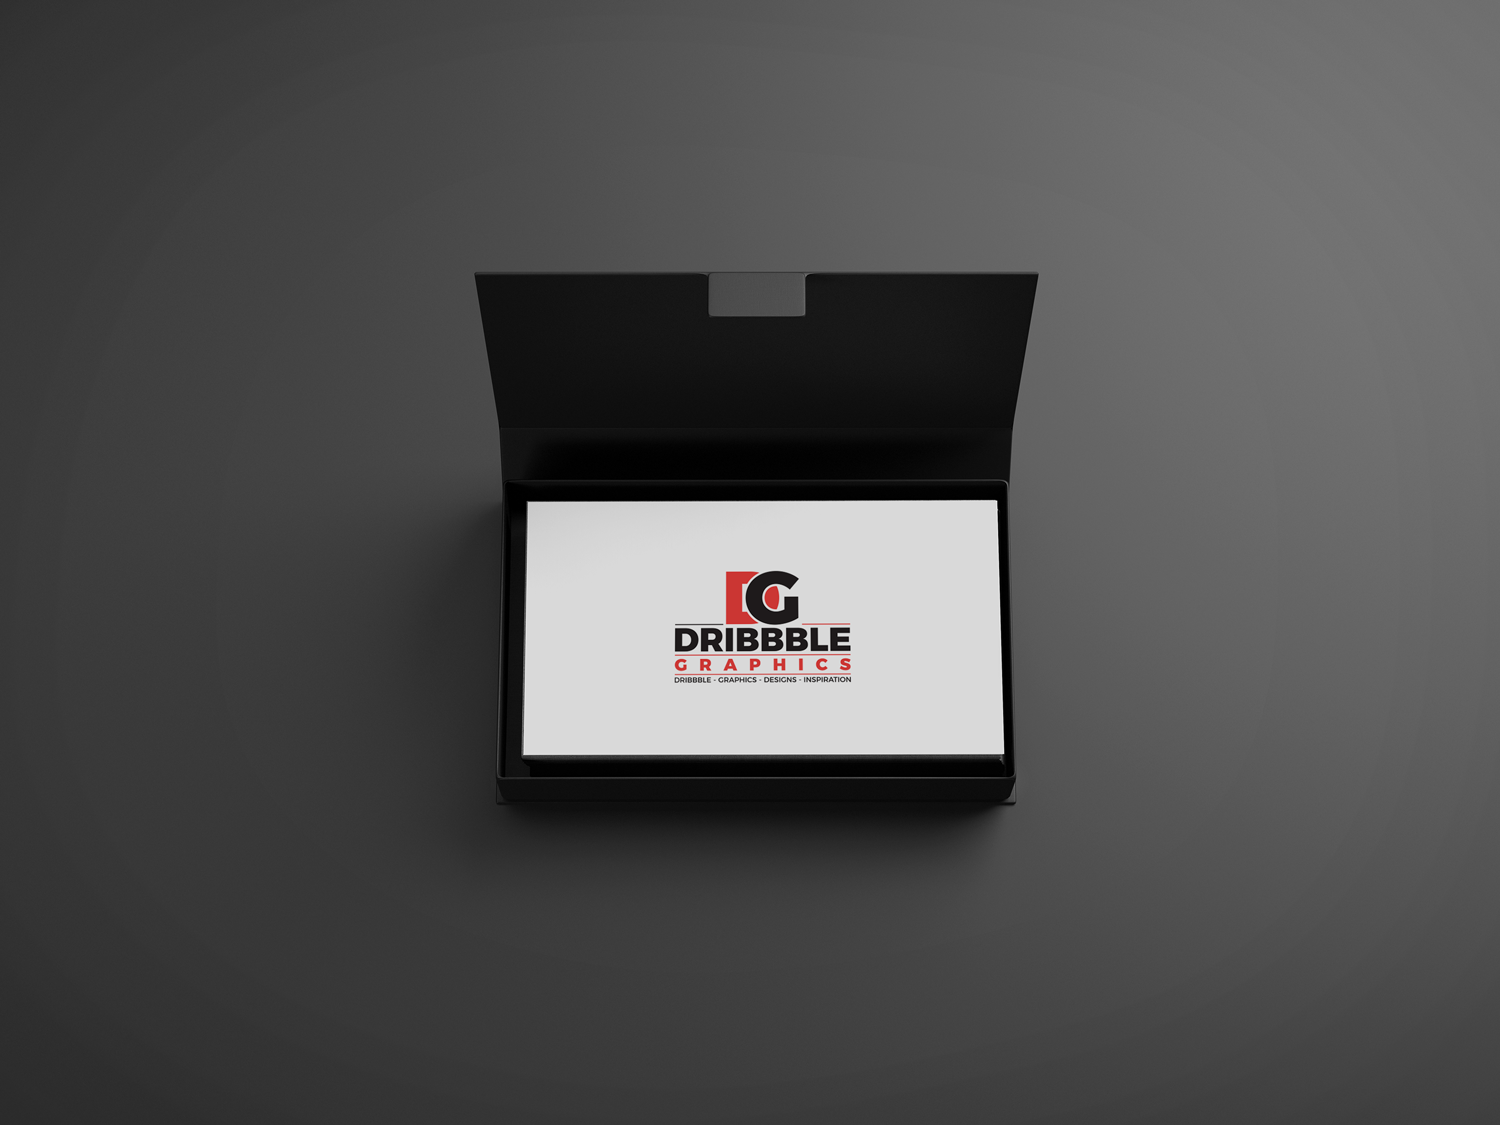 Free business cards in box mock up 329 mb dribbble graphics free business cards in box mock up 329 mb dribbble graphics reheart Image collections